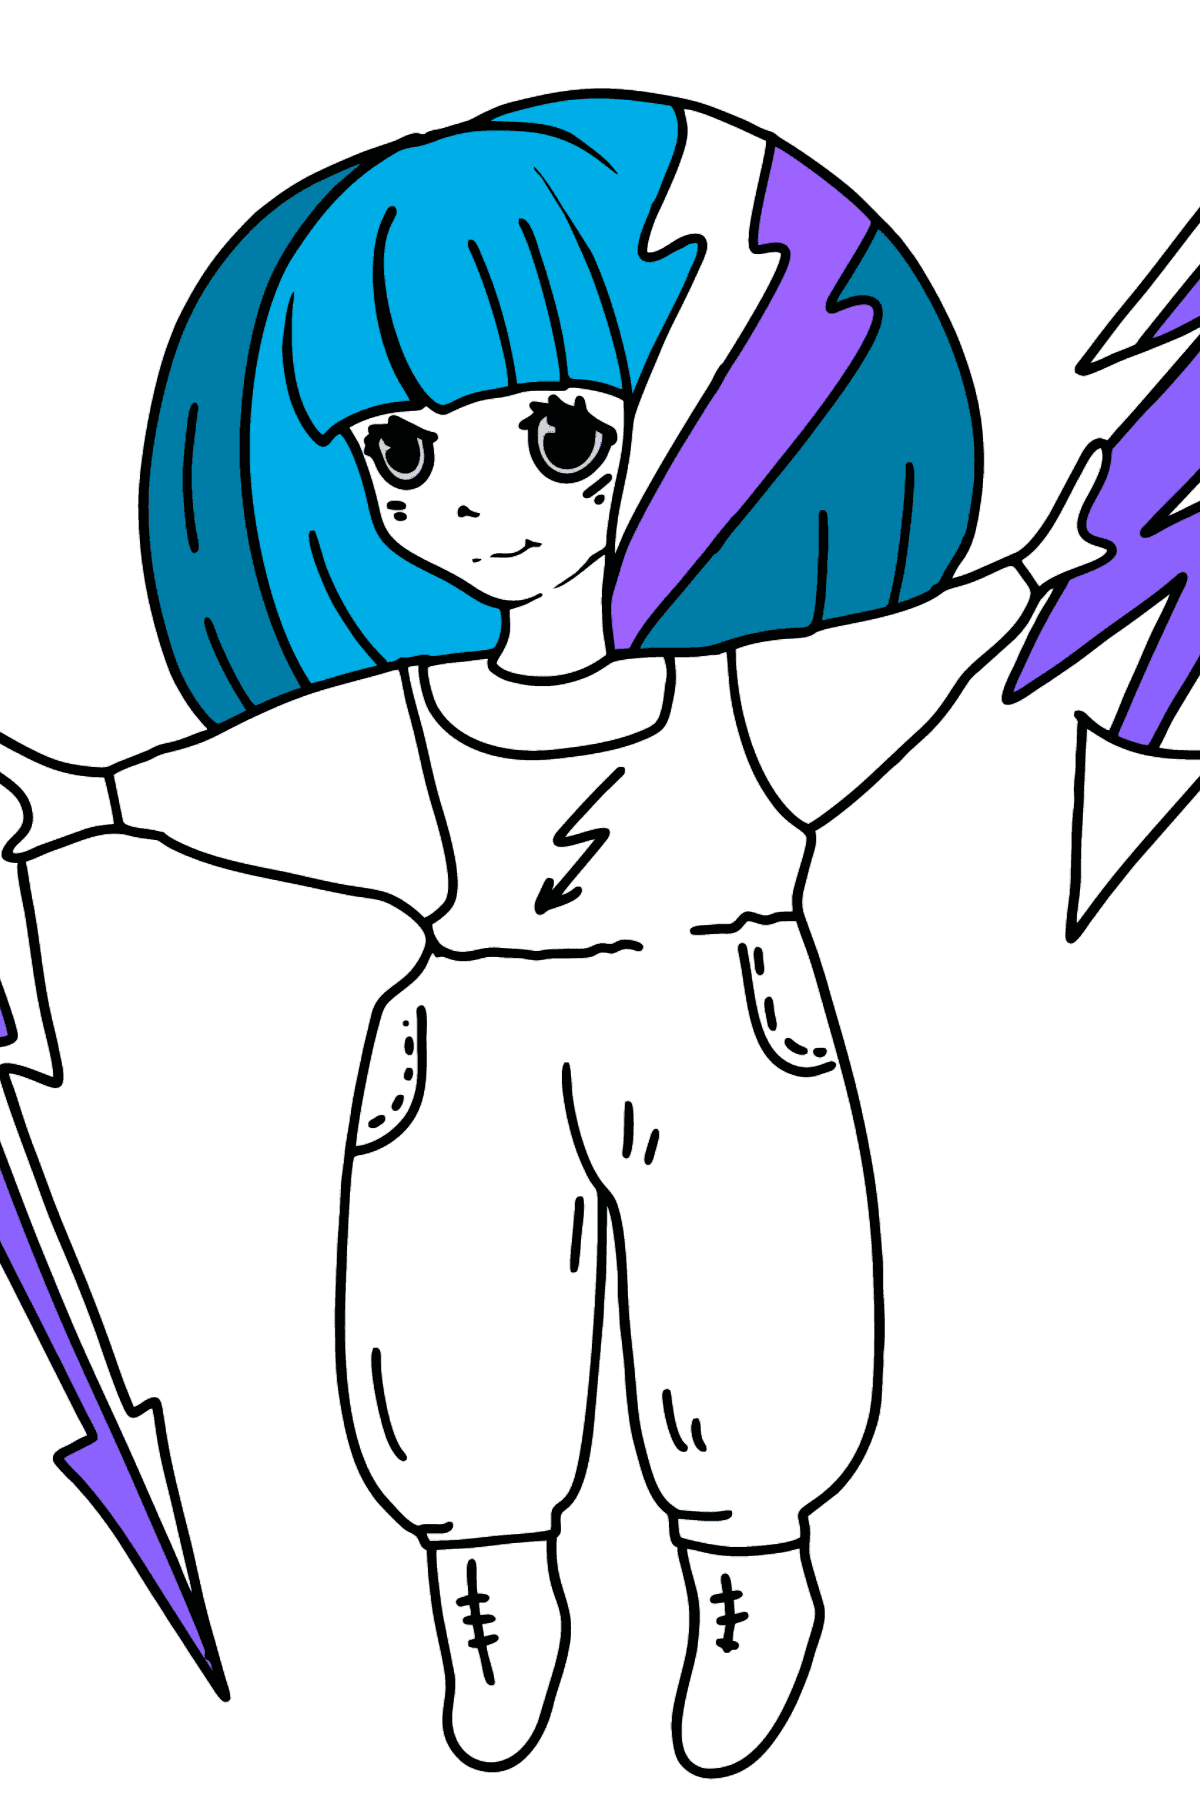 Thunder Anime Girl Coloring Pages - Coloring Pages for Kids